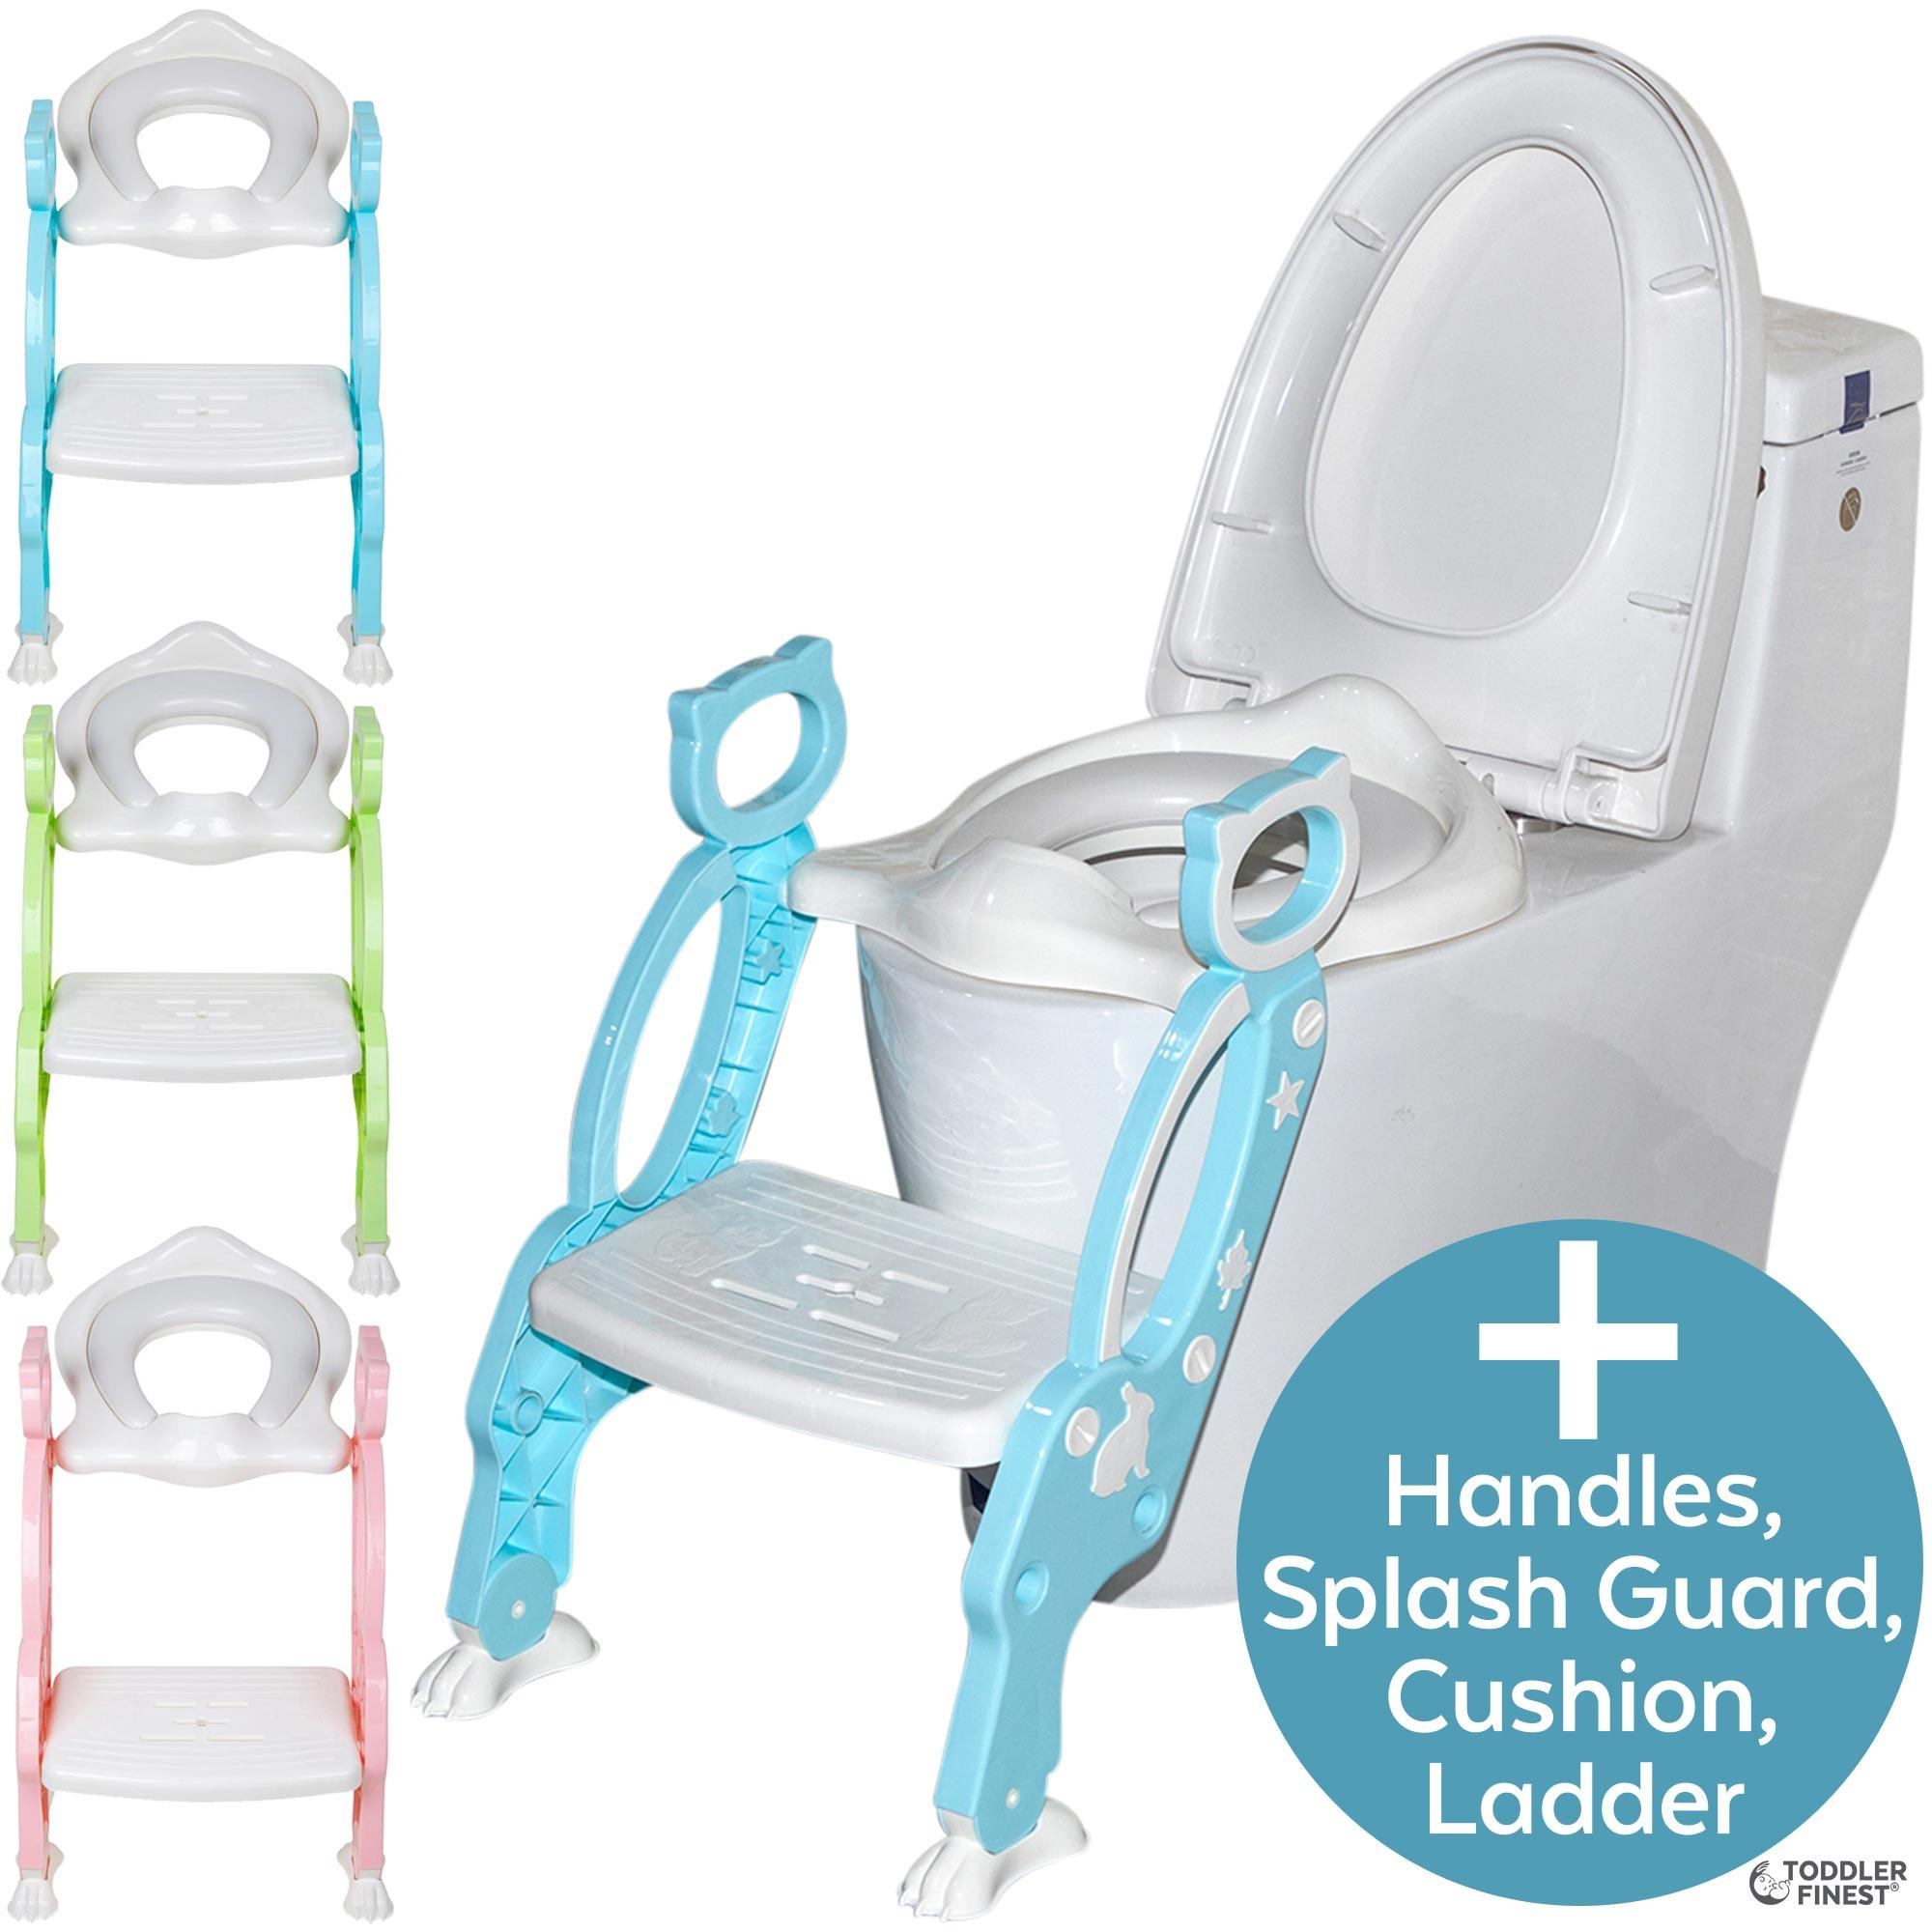 2 In 1 Potty Training Seat With Step Stool Ladder Adjustable Toddler Toilet Training Seat Soft Anti Cold Padded Seat Non Slip Urinal Pad Splash Guard Safe Handle Portable Easy Clean